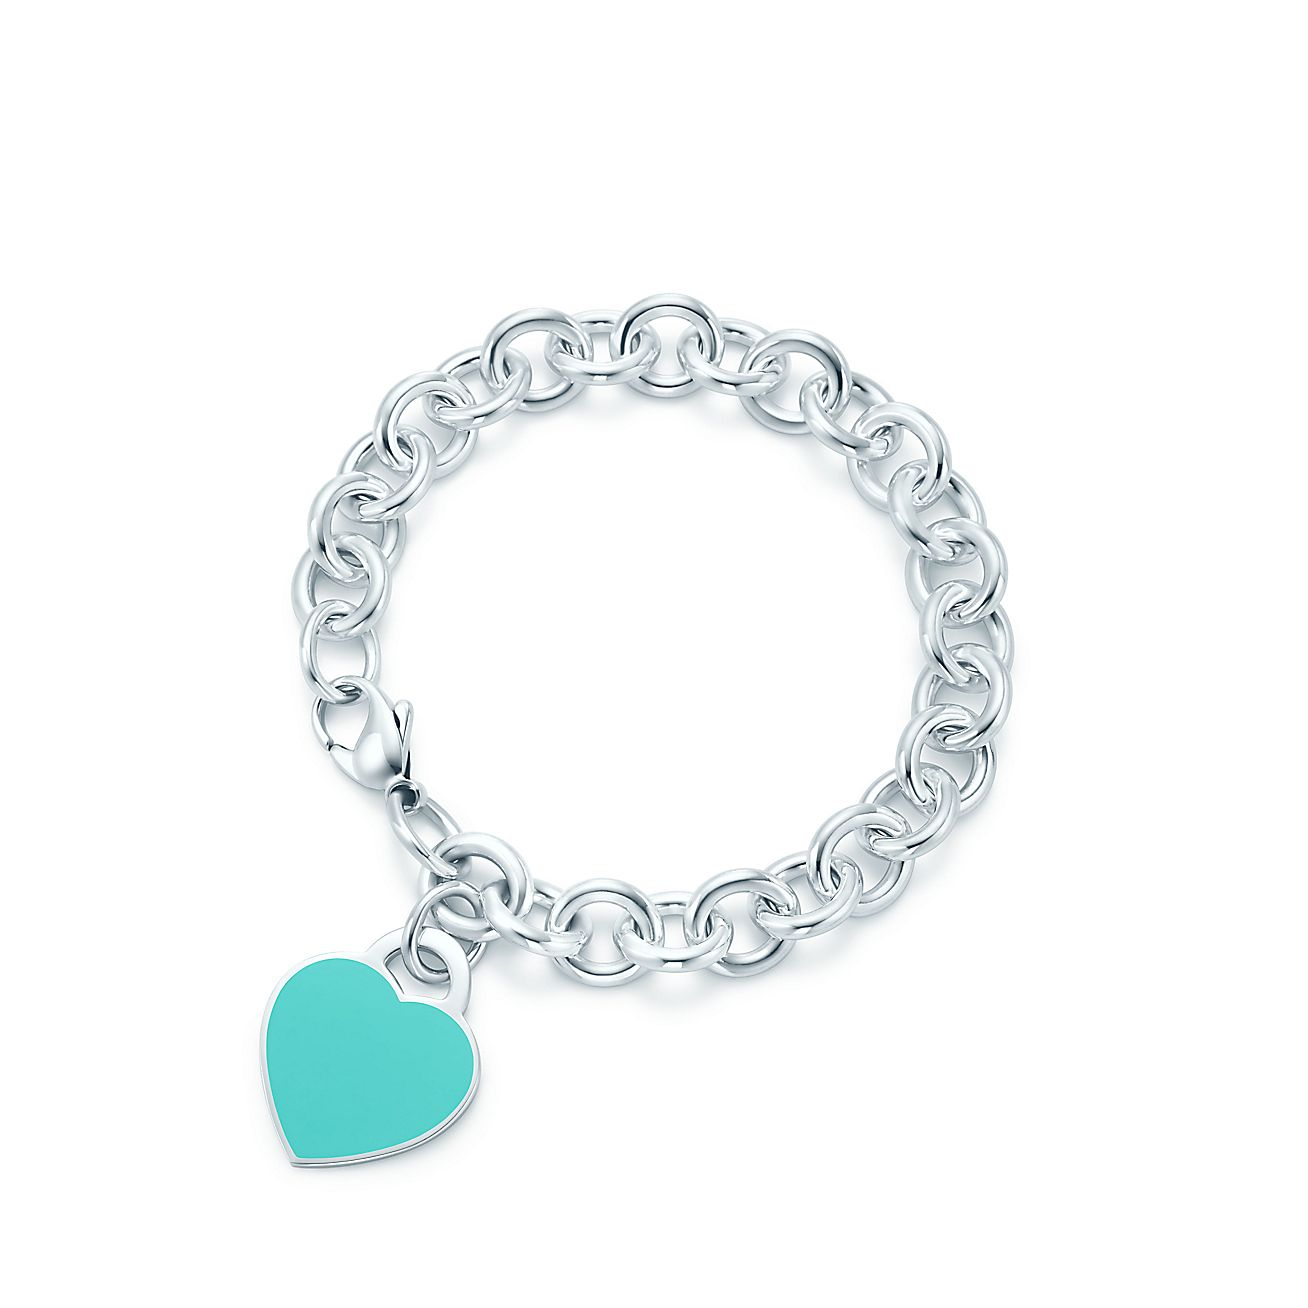 Return To Tiffany Heart Tag In Silver With Enamel Finish On A Bracelet Medium Co